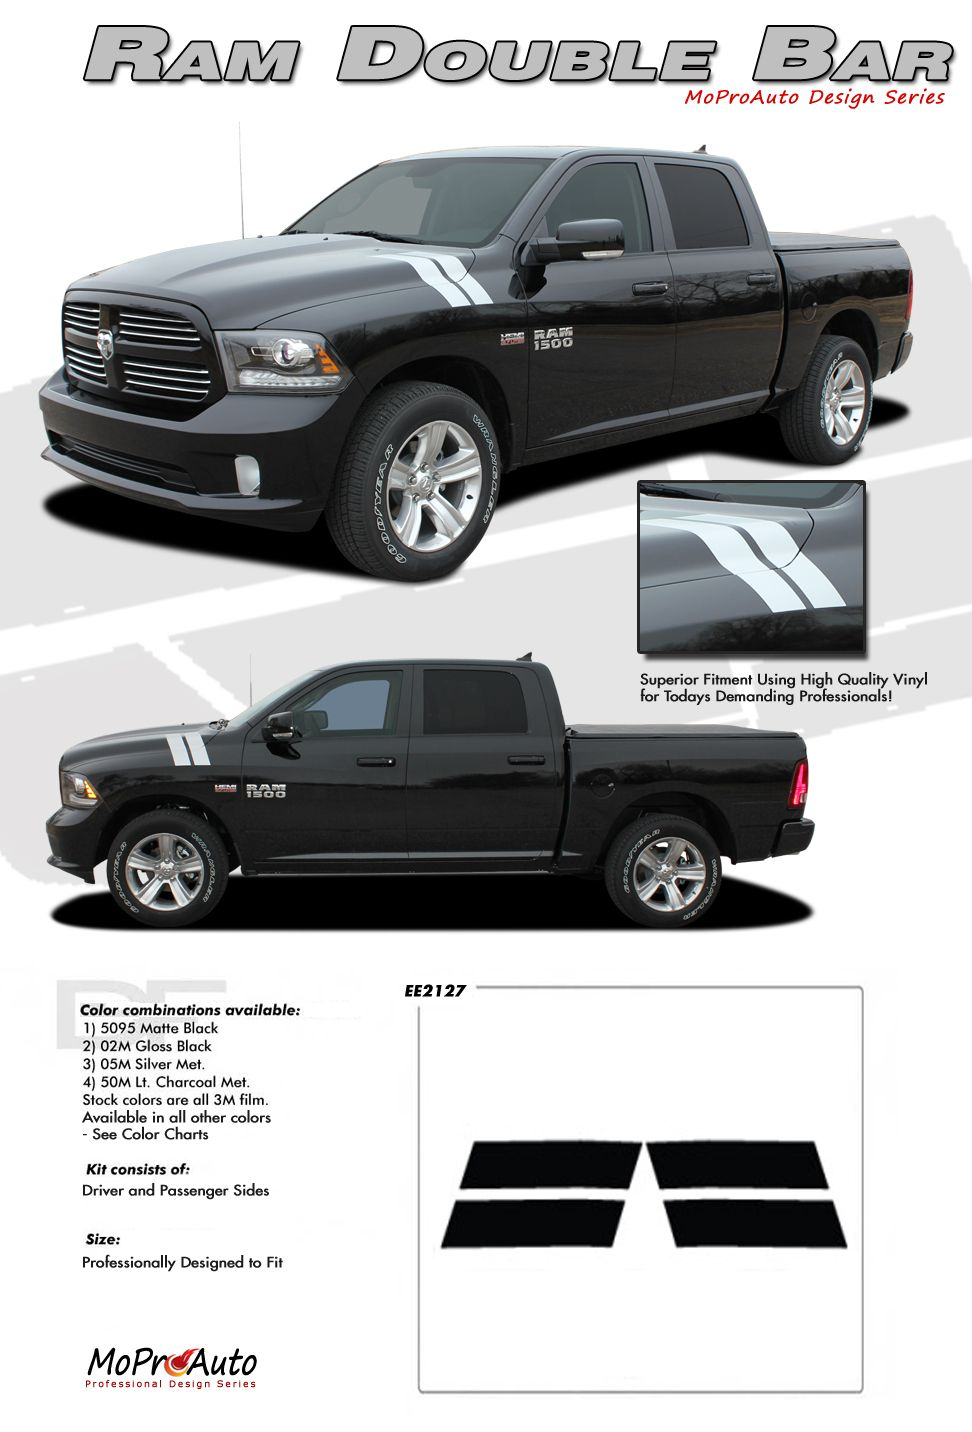 RAM DOUBLE BAR Dodge Ram Hood - Truck bed decals custombody graphicsdodge ram